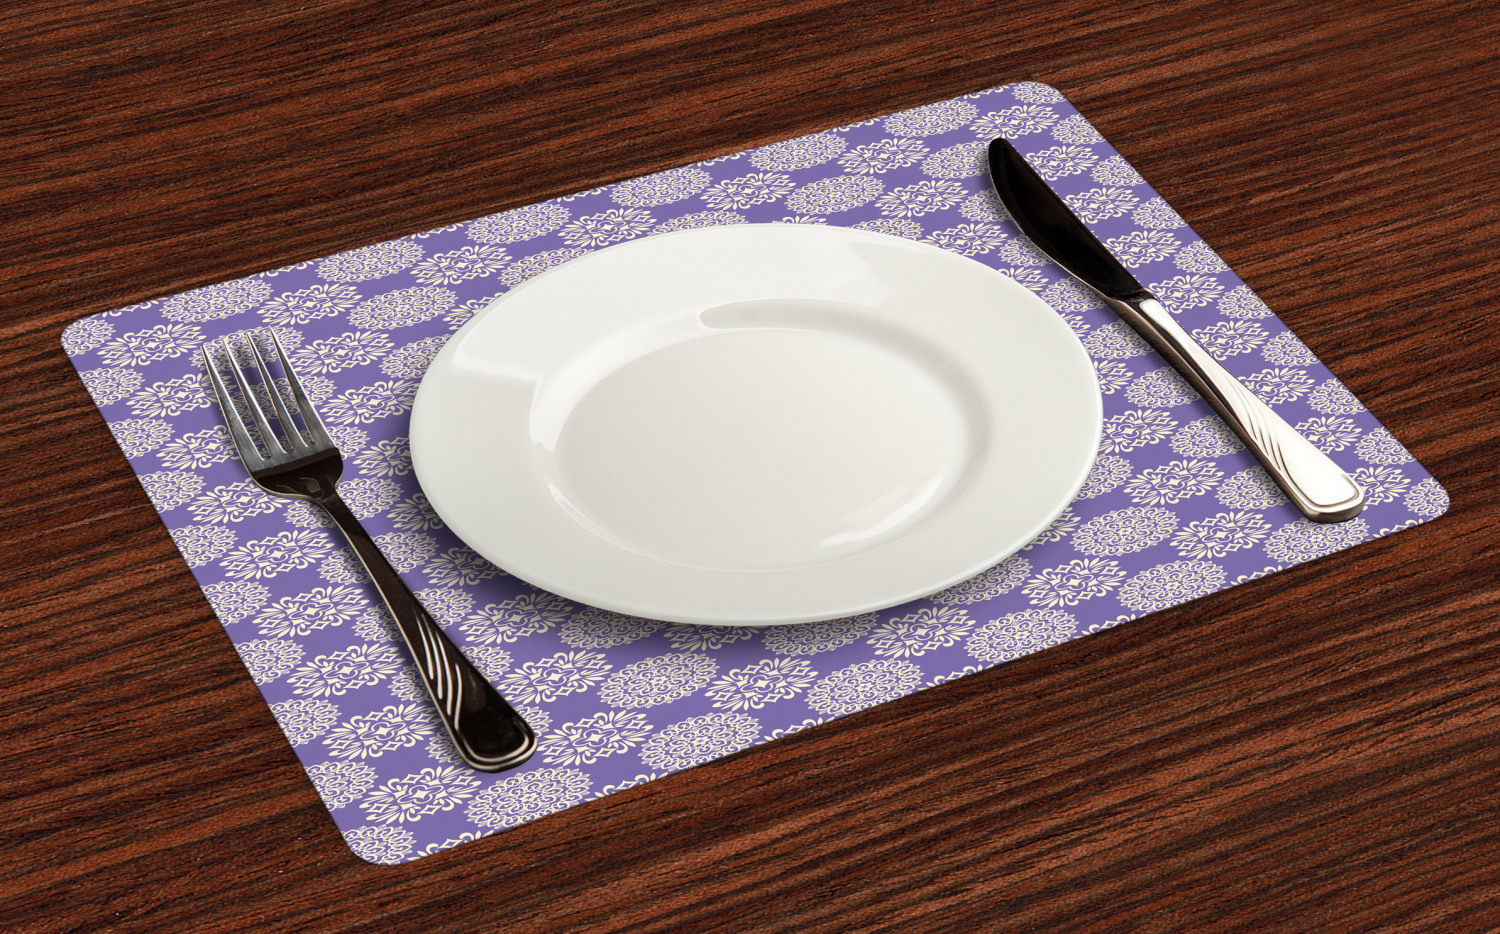 Ambesonne-Flower-Pattern-Placemat-Set-of-4-Fabric-Place-Mats-for-Table-Decor thumbnail 197